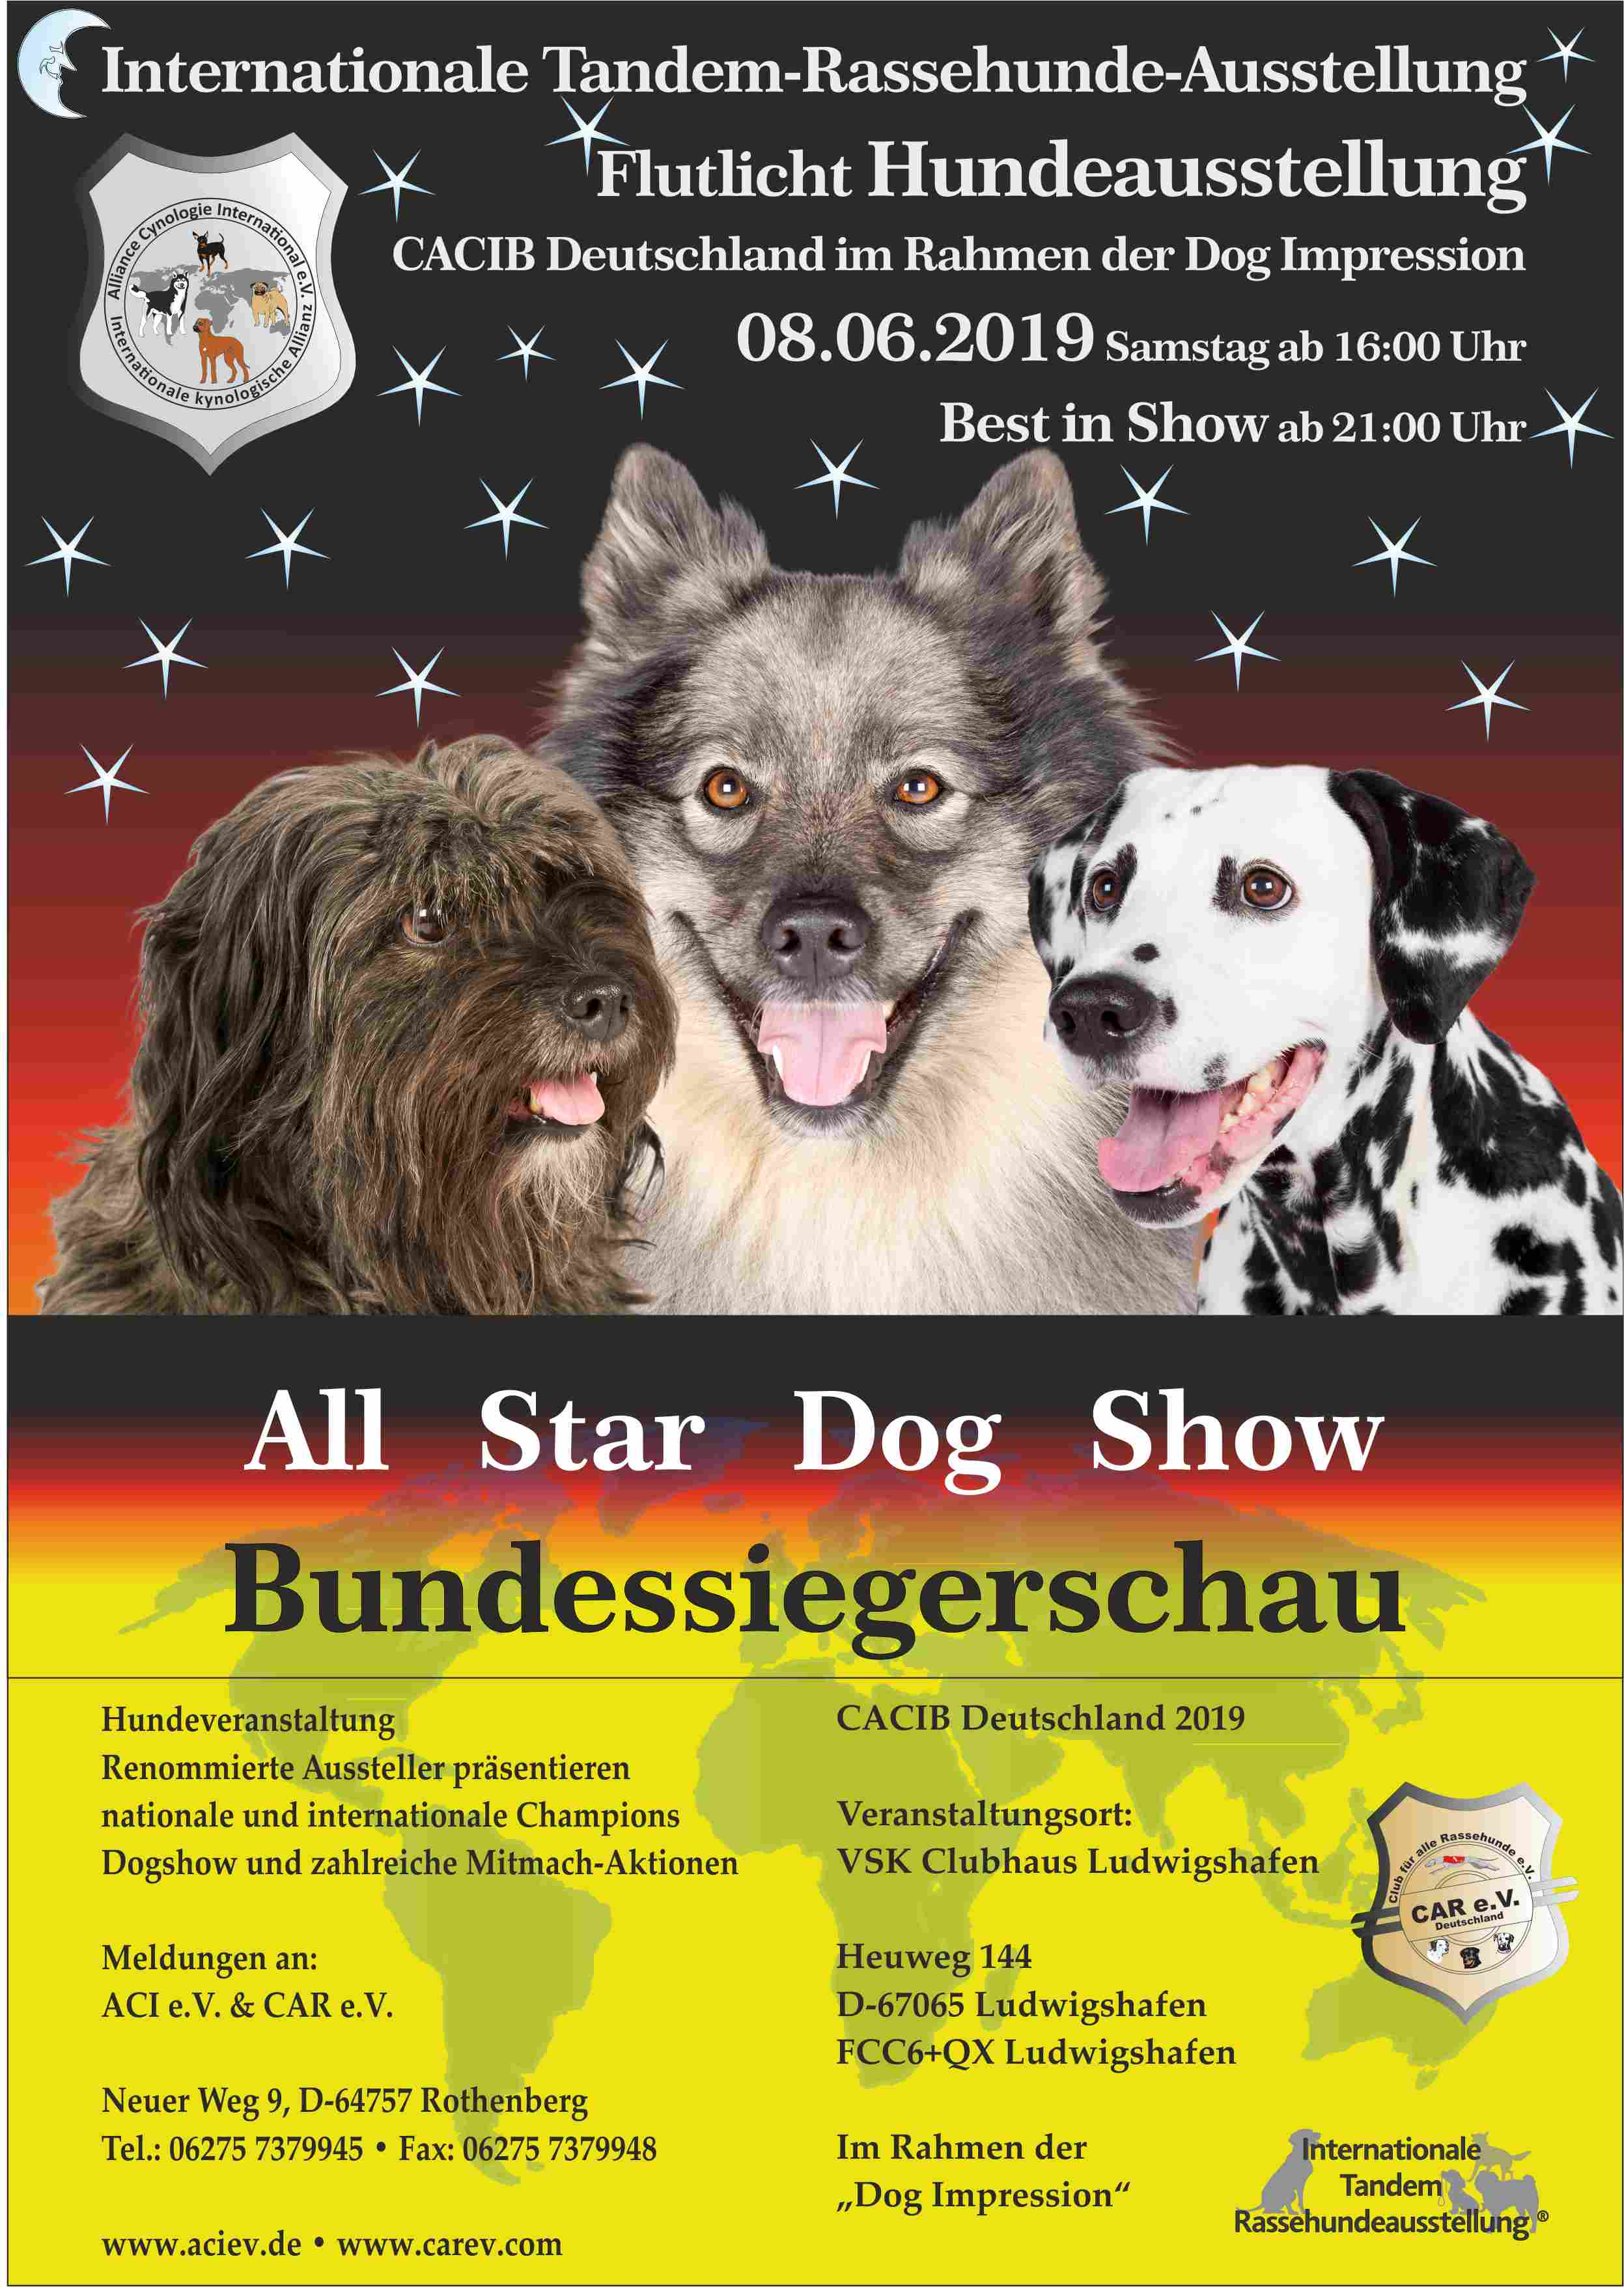 All Star Dog Show und Bundessiegerschau 08.06.2019